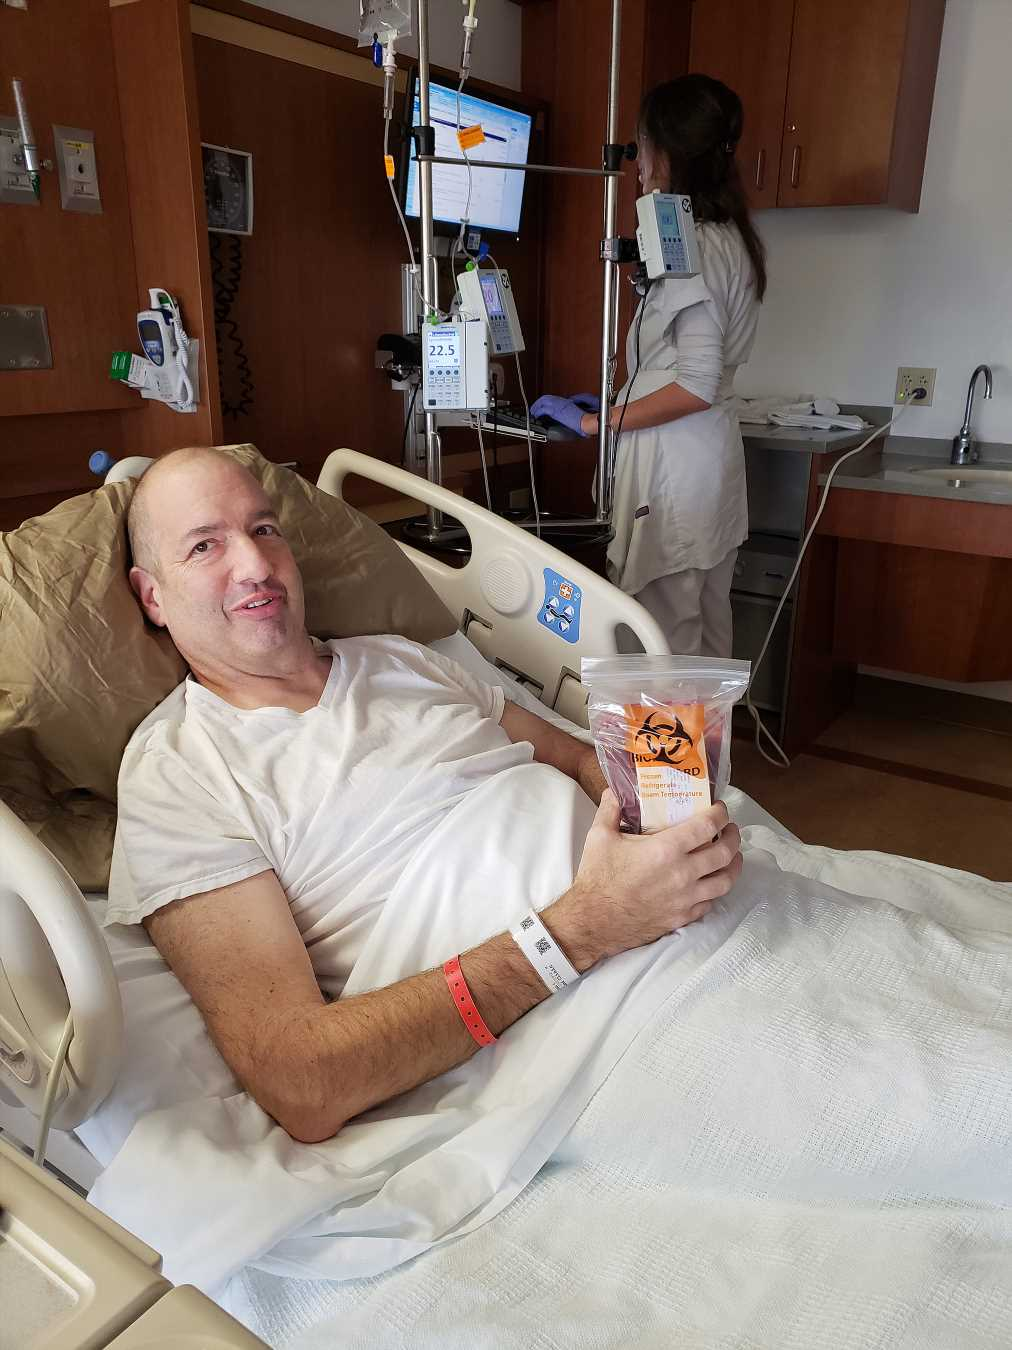 Ohio Man Learns Painful 'Bug Bite' Is Actually Leukemia: I Thought It Was 'Nothing'